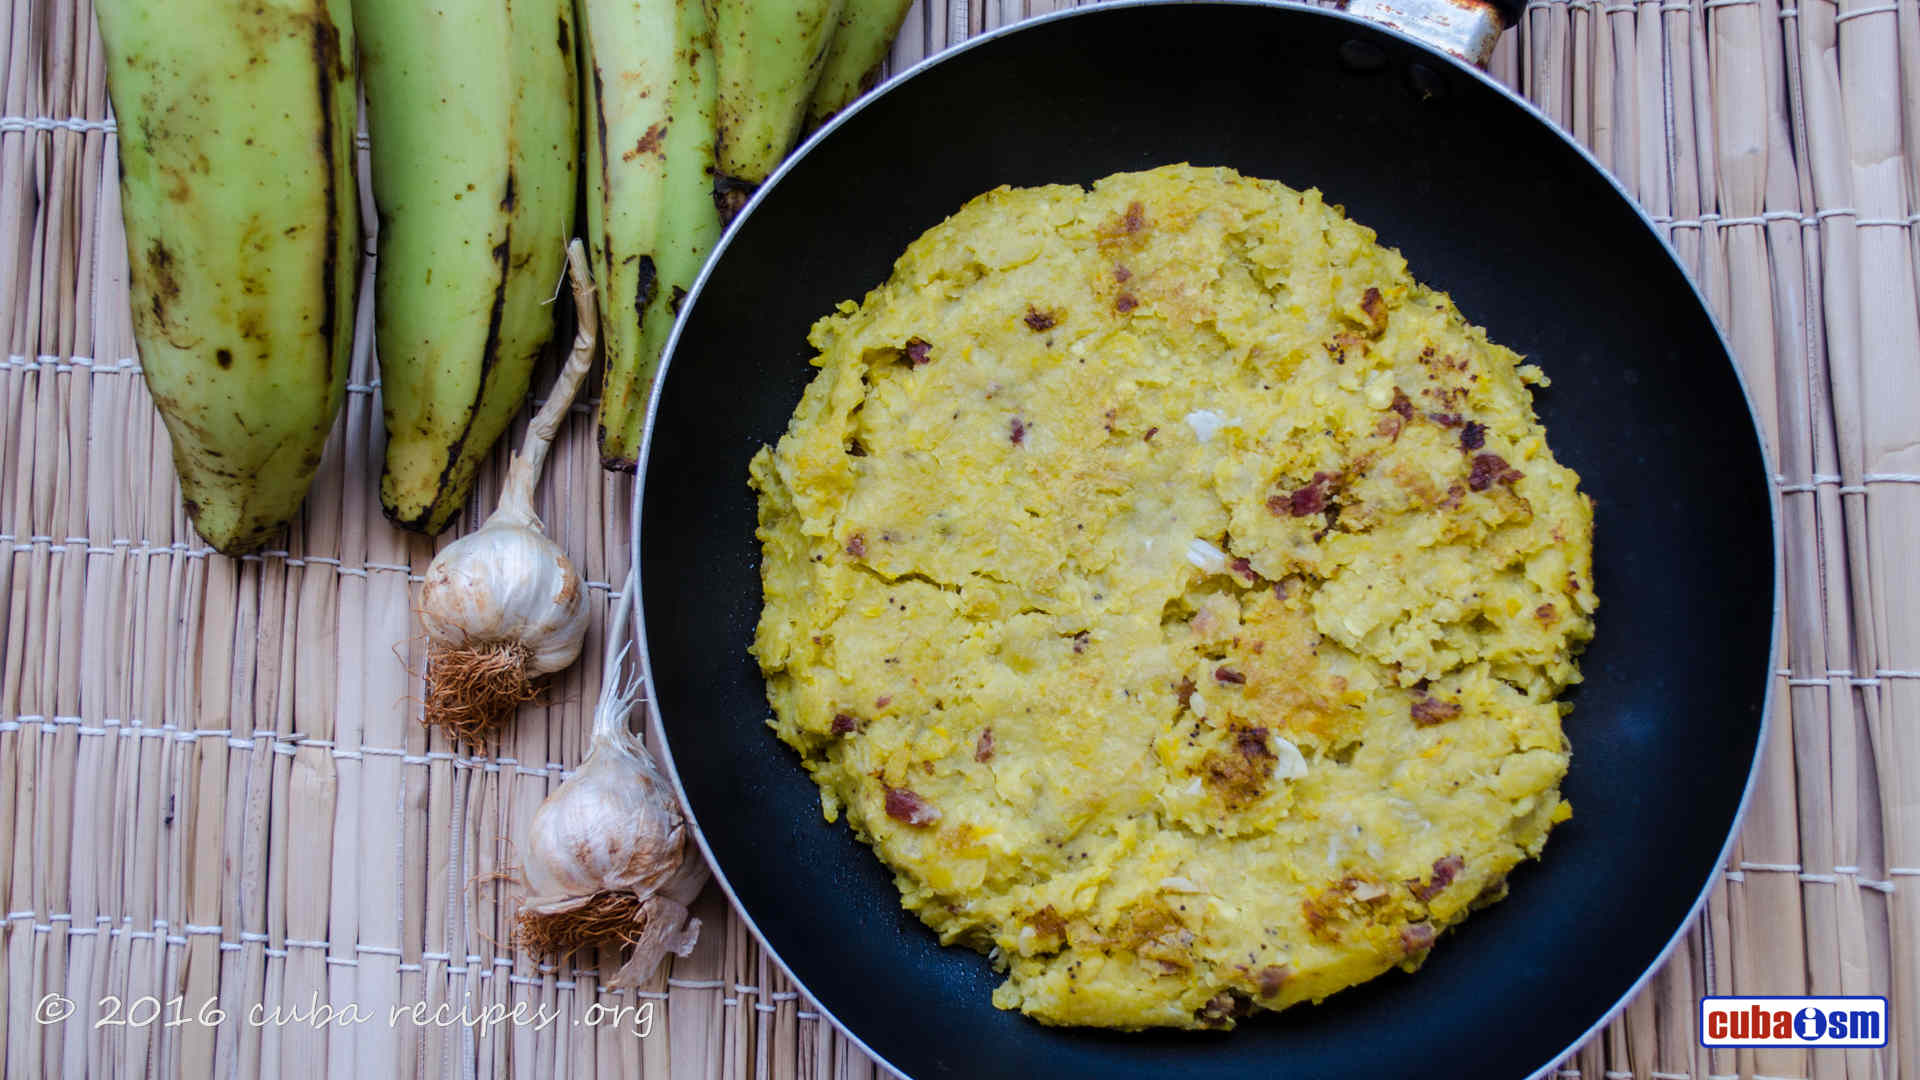 cuba recipes .org - Fufú de Plátano (Cuban Mashed Plantain)